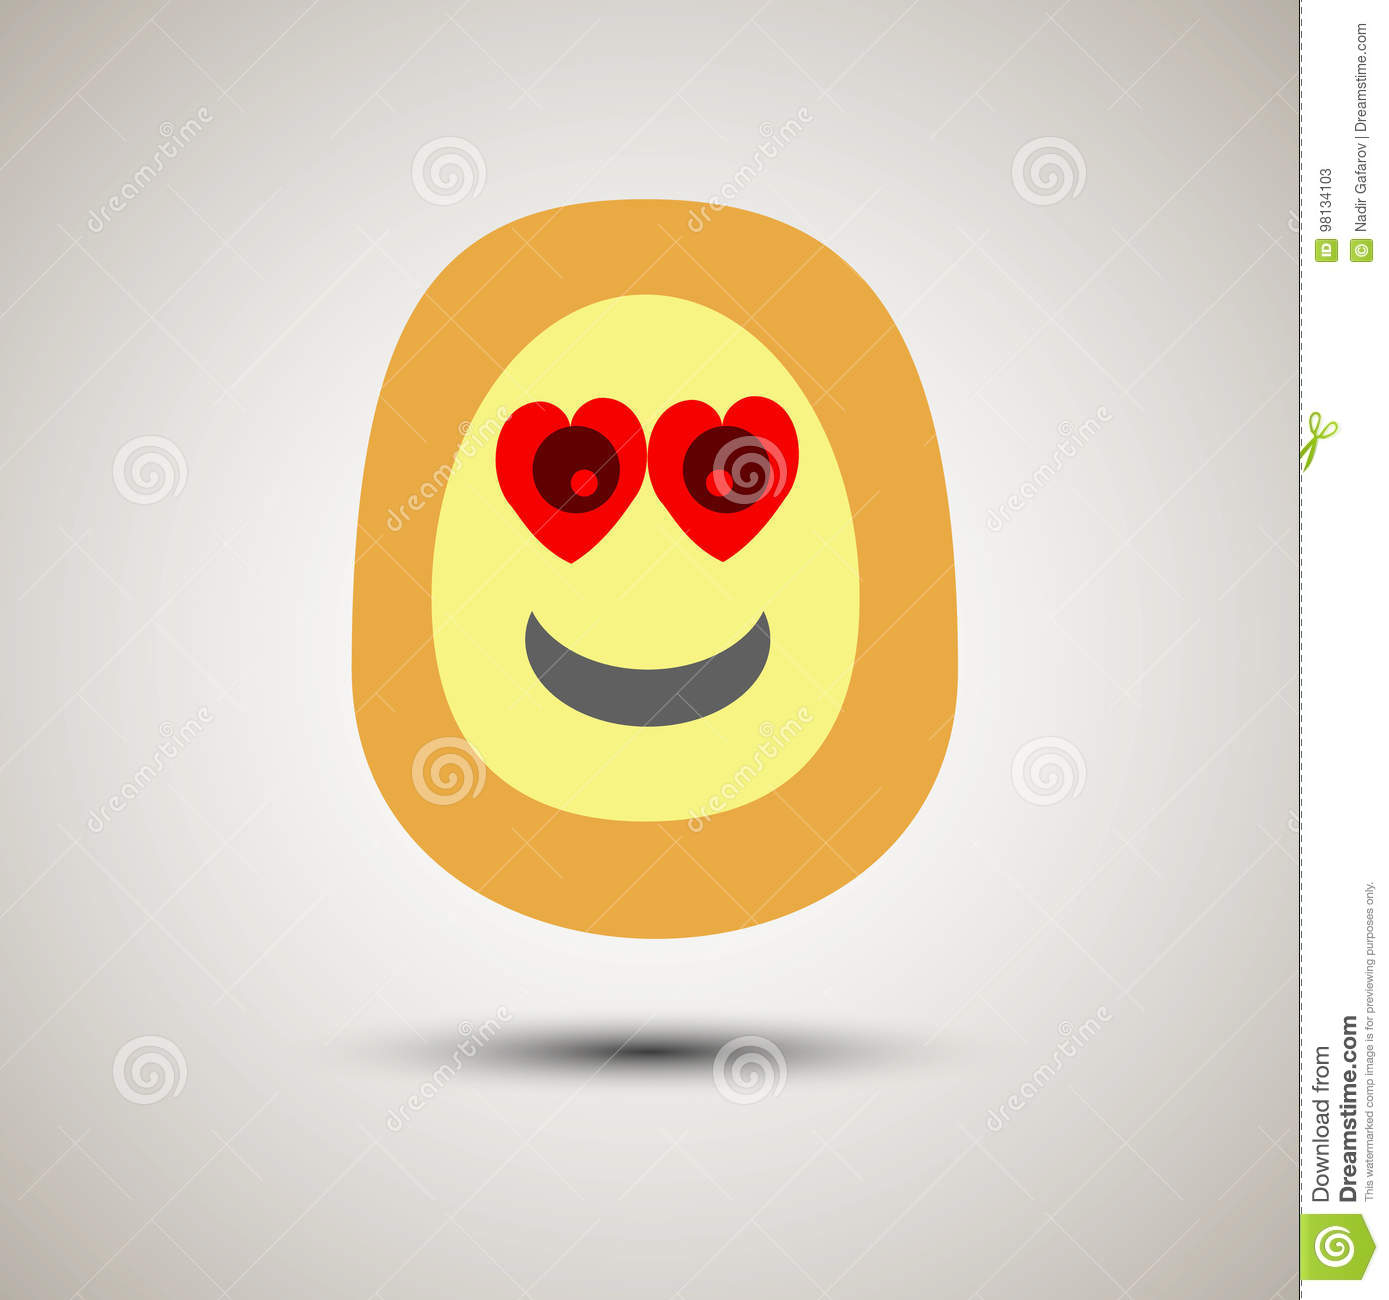 Creative Emoji Smiley Face In Love  Stock Vector - Illustration of